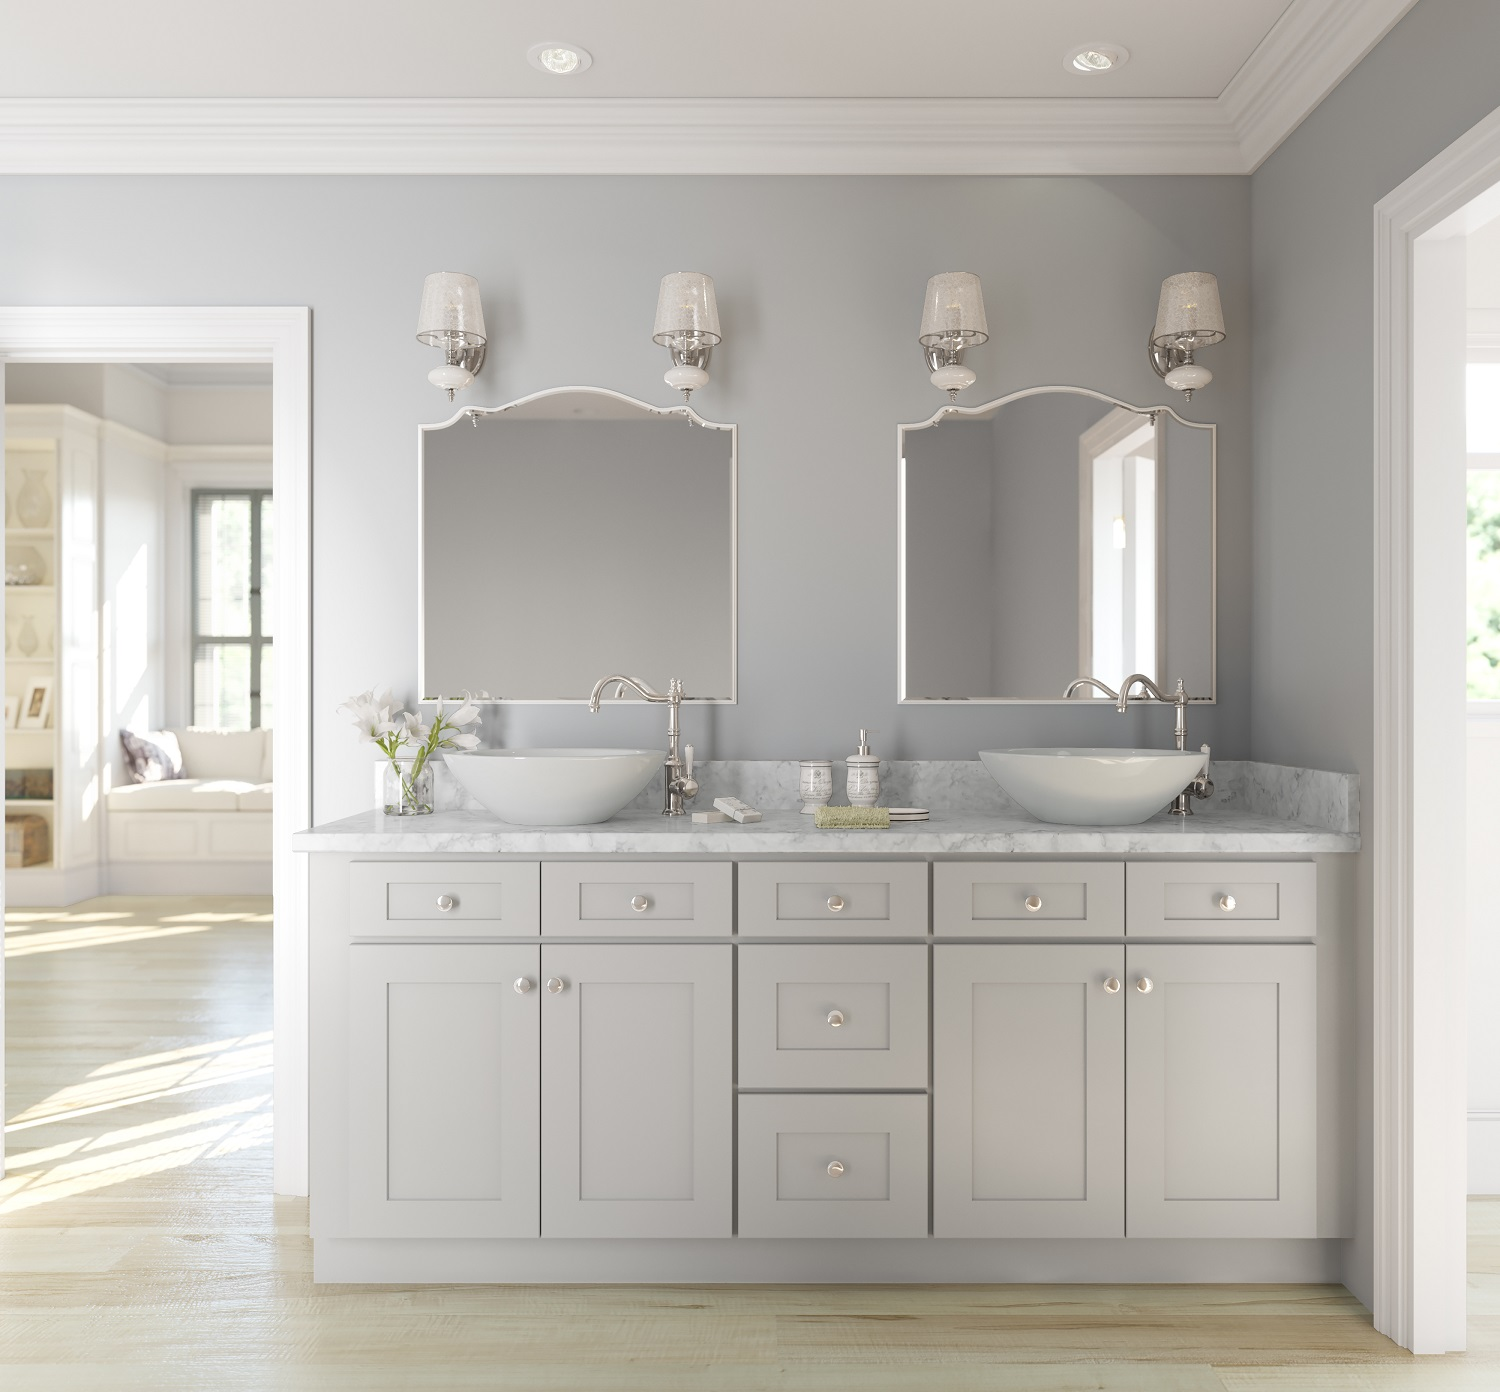 Stone Shaker Ready To Assemble Bathroom Vanities Cabinets - Light gray bathroom cabinets